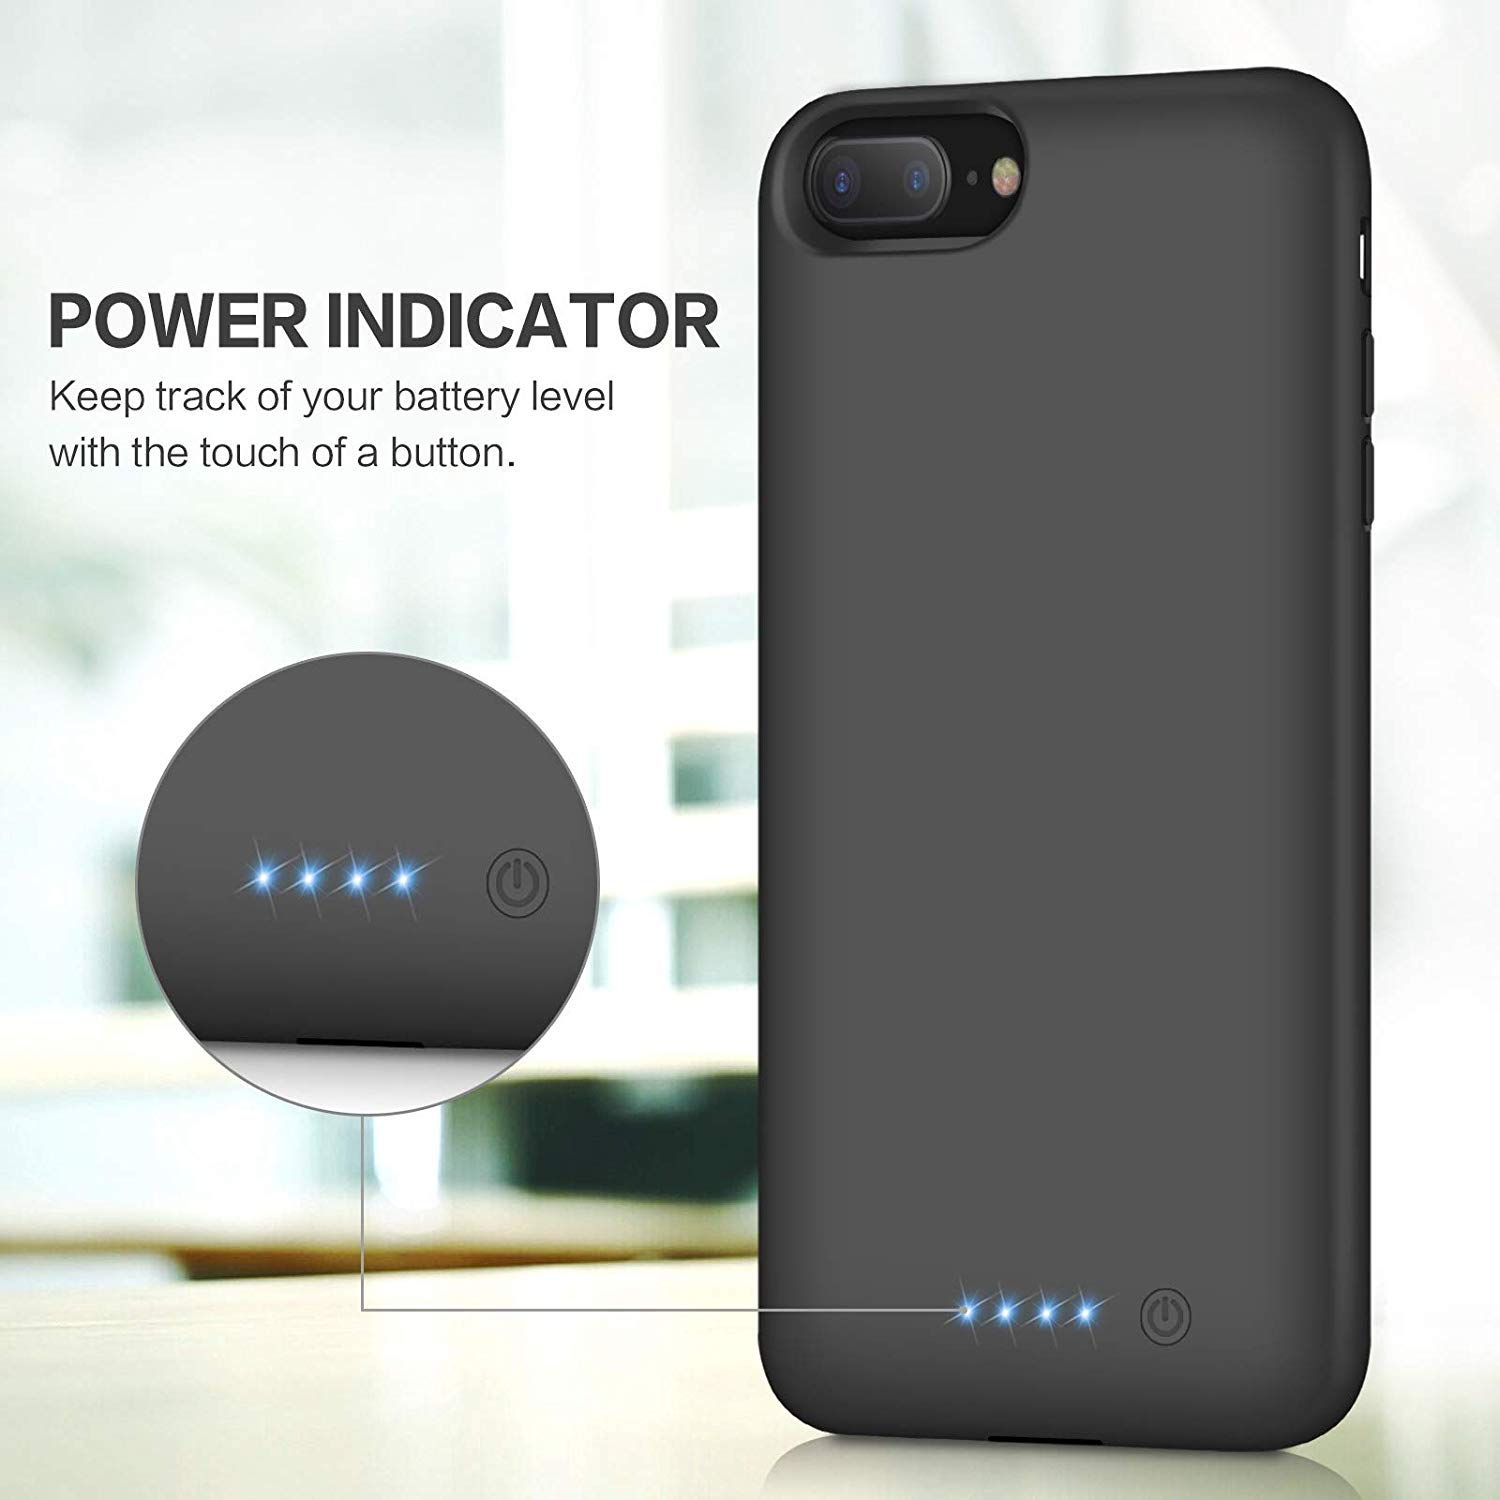 Battery Case for iPhone 8 Plus/7 Plus, [8500mAh] Xooparc Protective Portable Charging Case Rechargeable Extended Battery Pack for Apple iPhone 8 Plus&7 Plus (5.5') Backup Power Bank Cover - Black by Xooparc (Image #5)